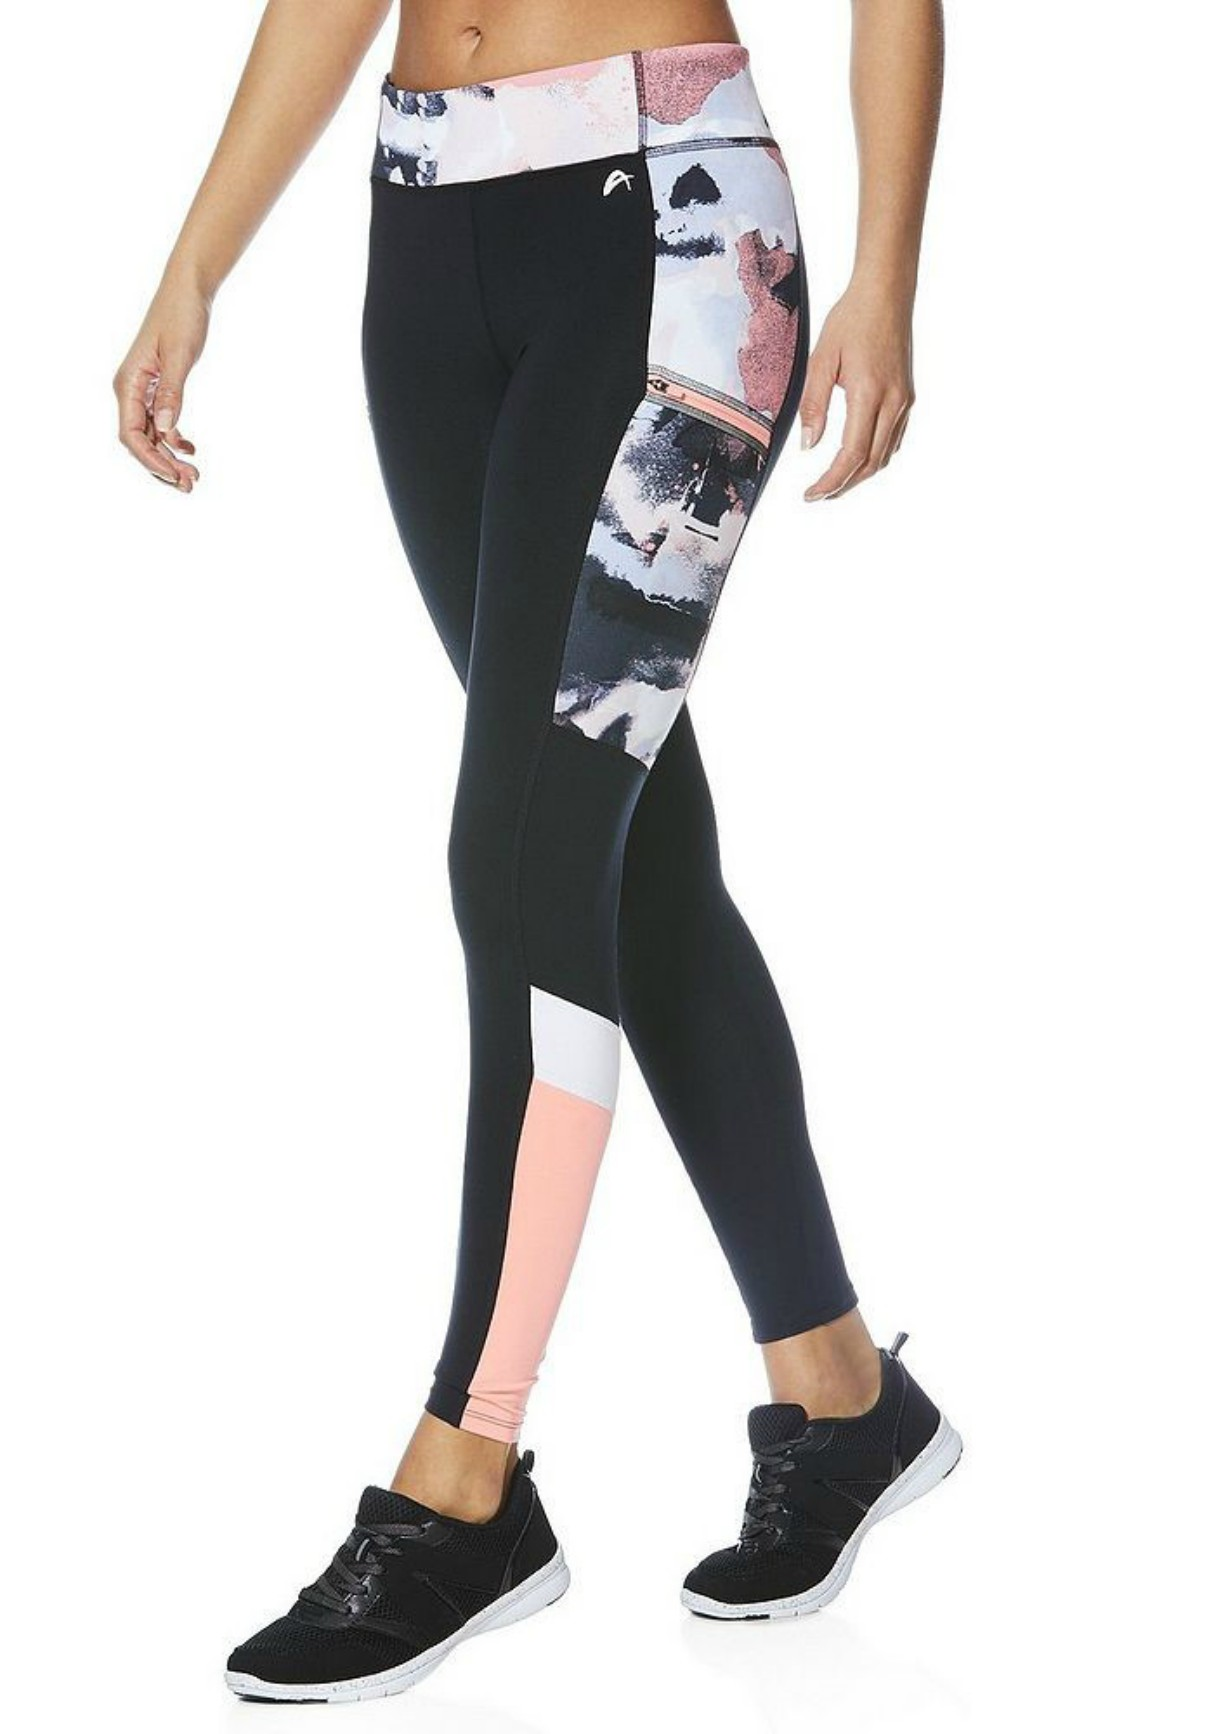 fitness-fashion-style-workout-tesco-f-f-leggings-1